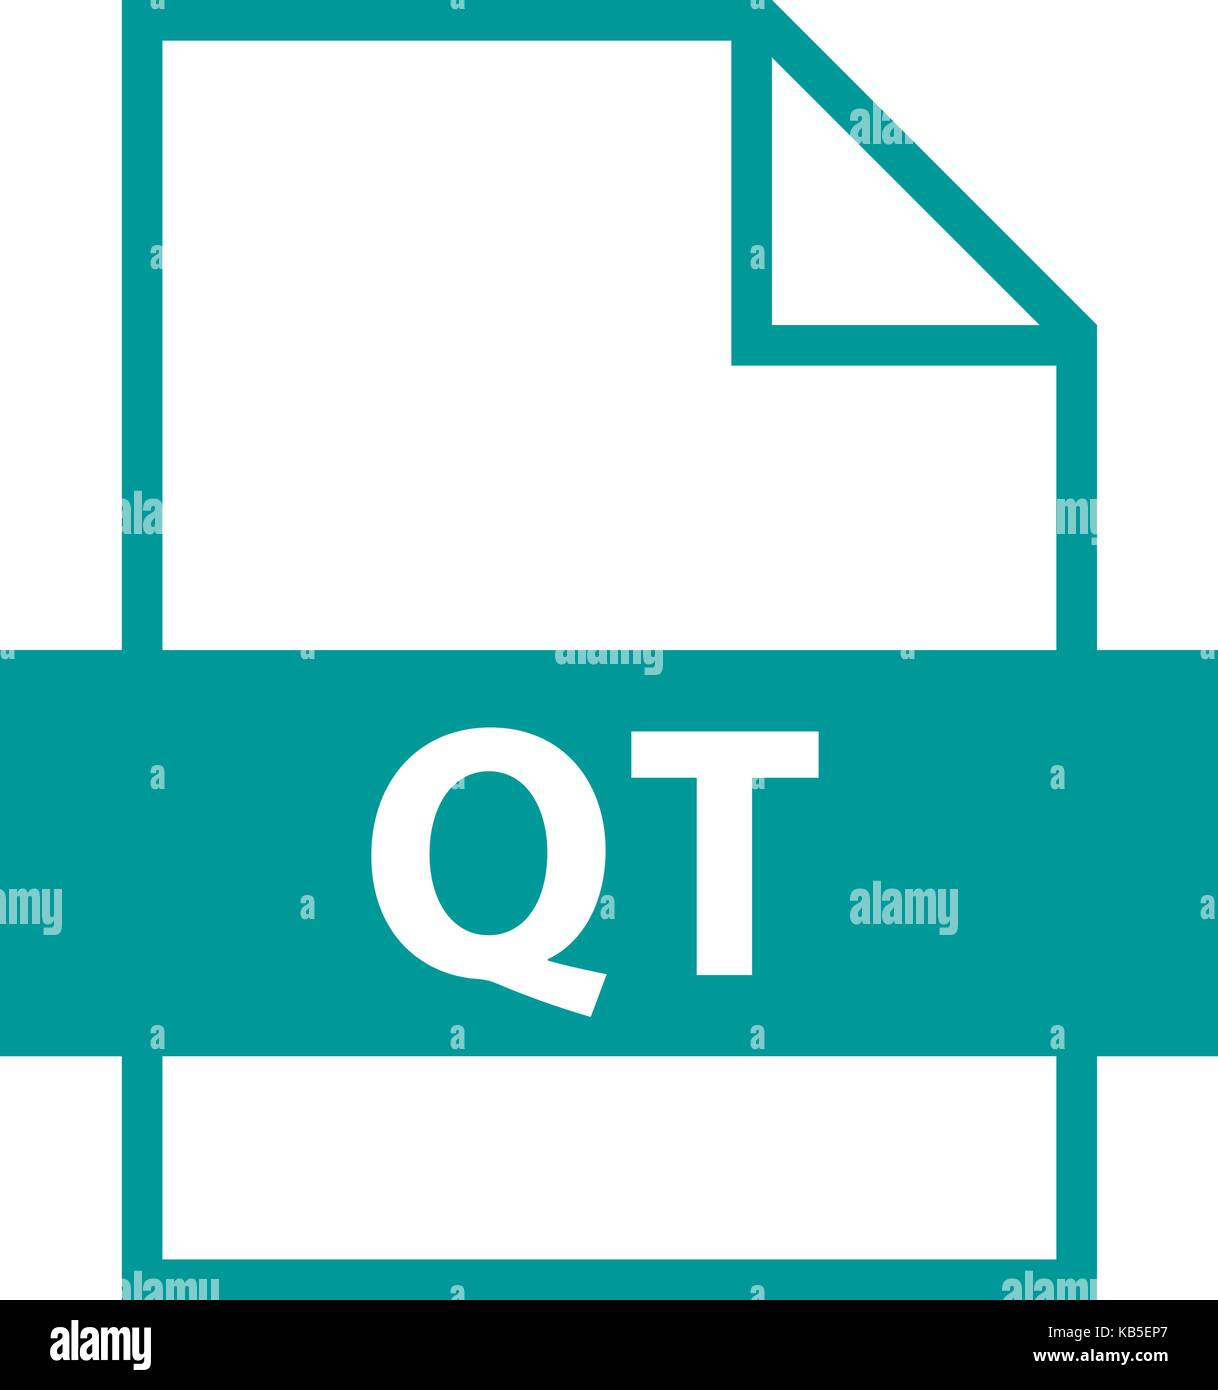 Use it in all your designs. Filename extension icon QT QuickTime File Format in flat style. Quick and easy recolorable - Stock Image